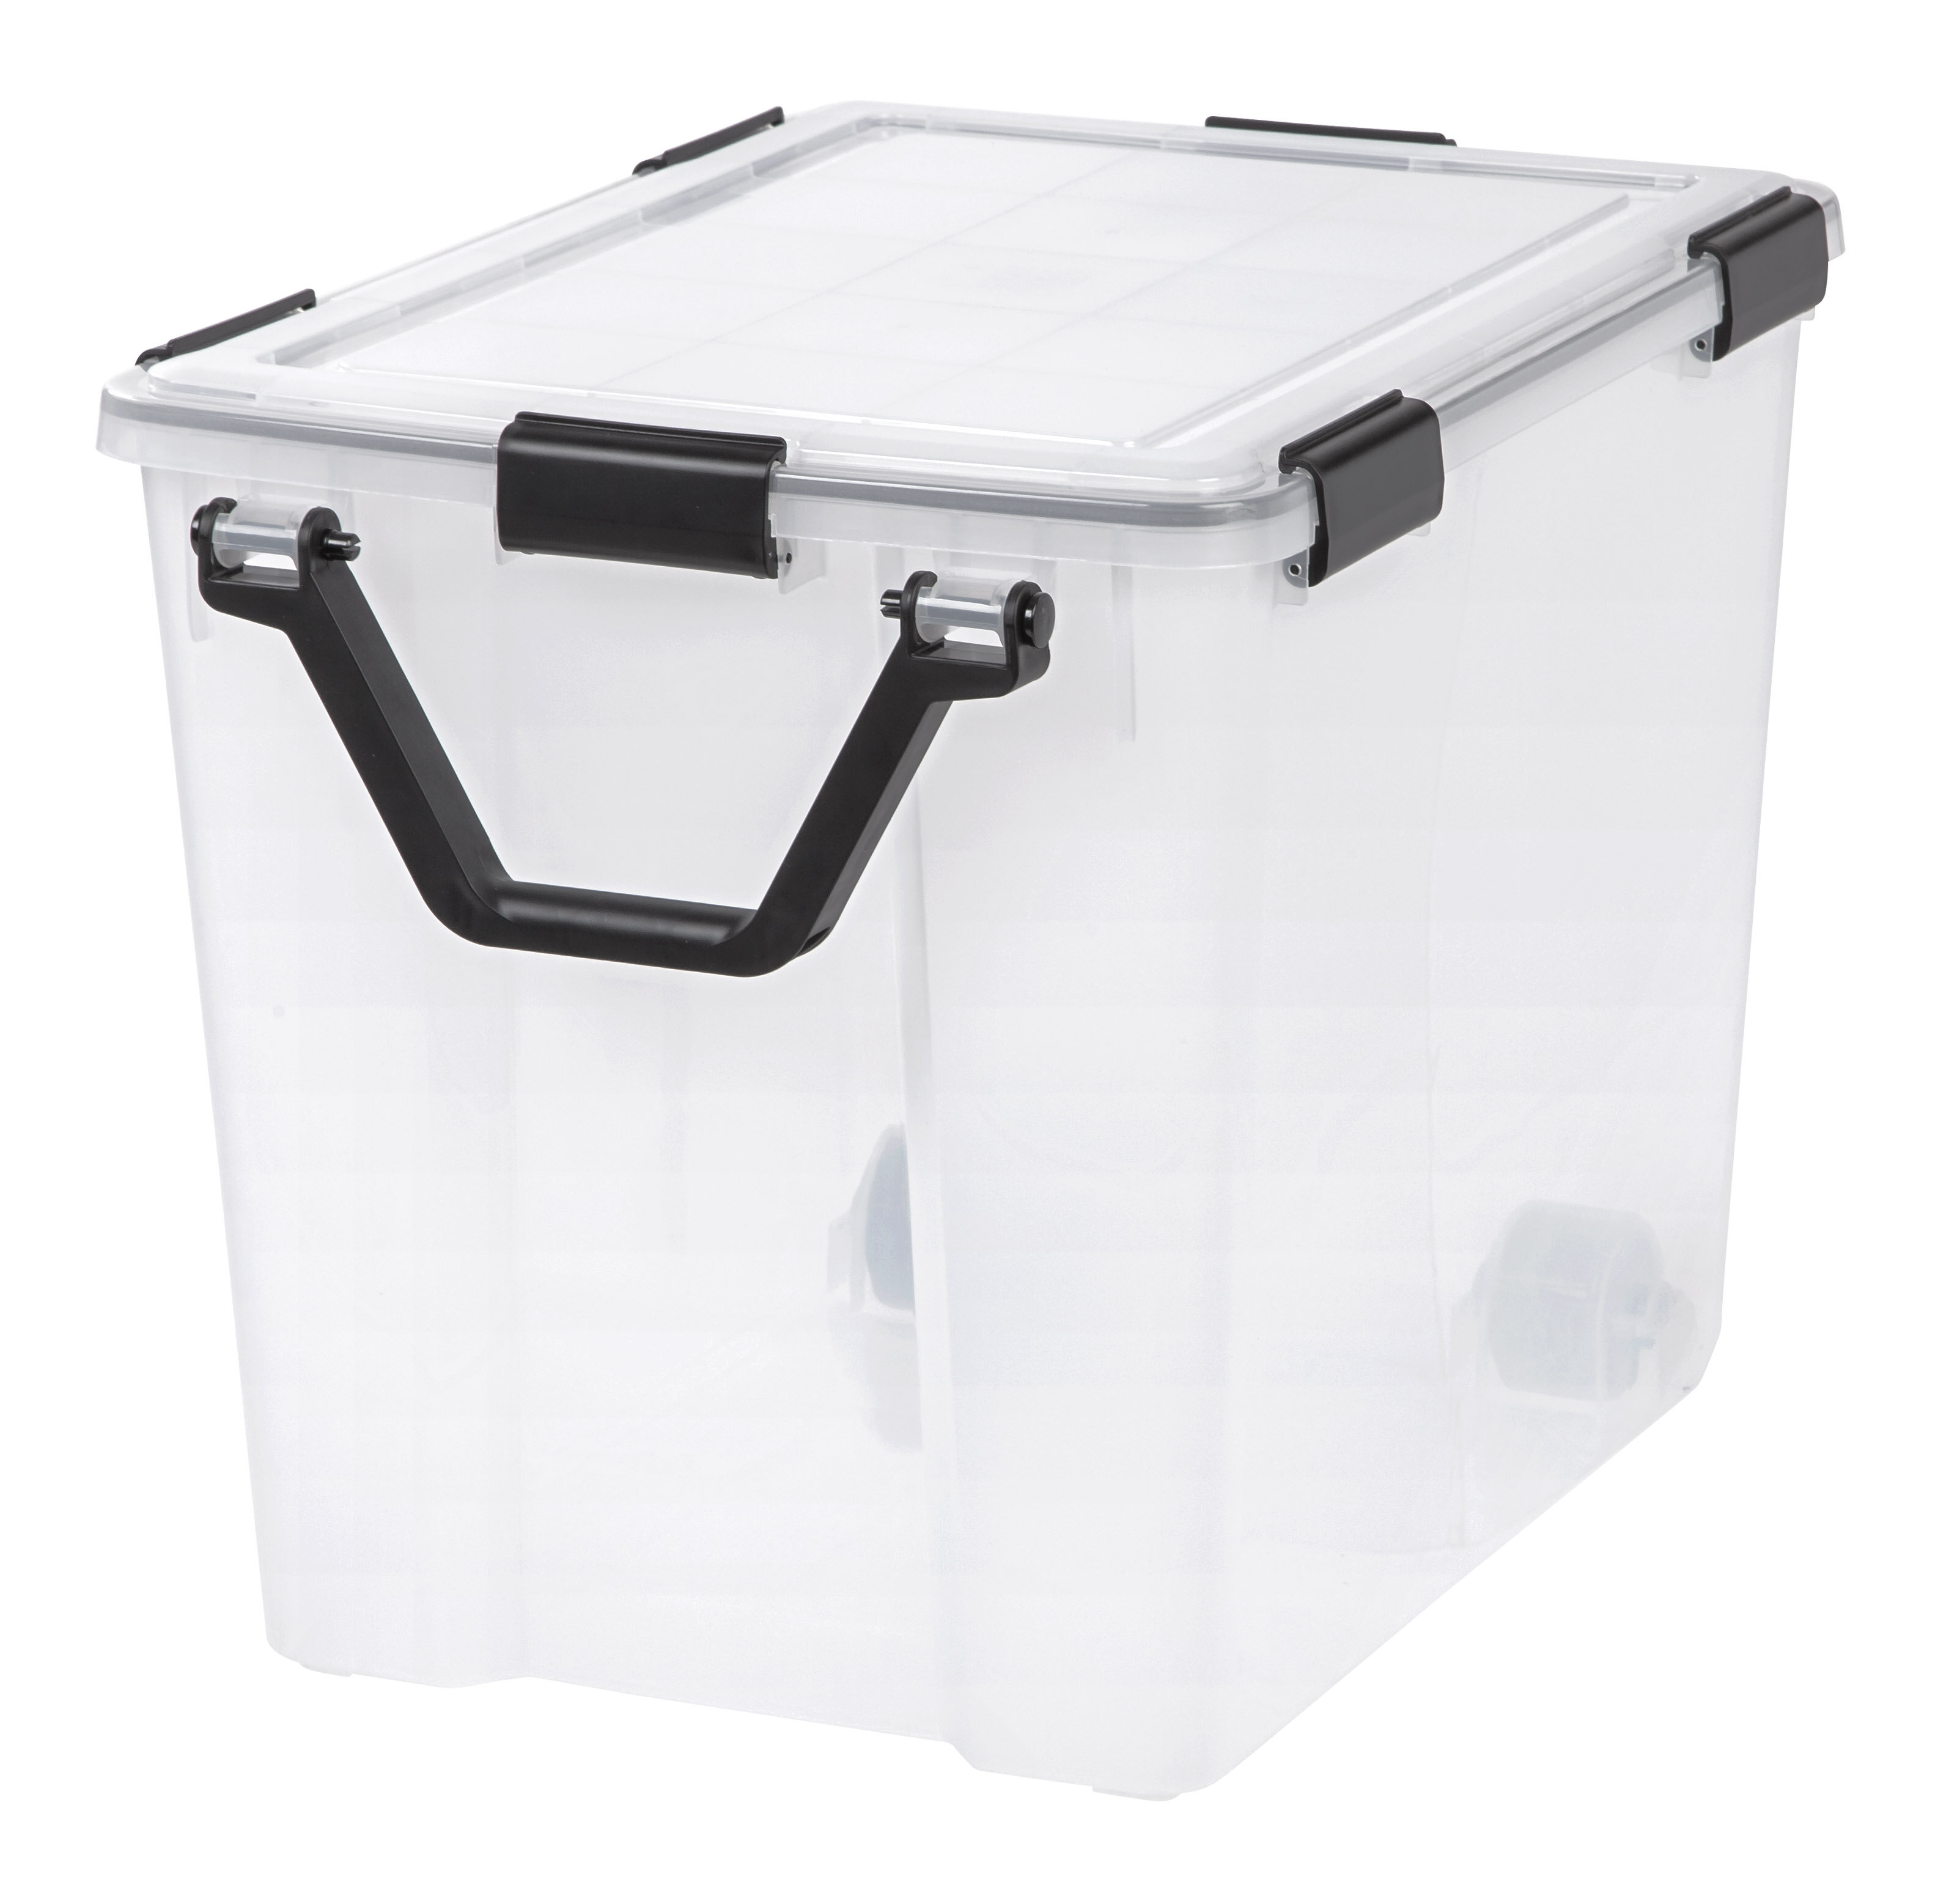 IRIS Weathertight 103 qt Plastic Storage Tote | Wayfair